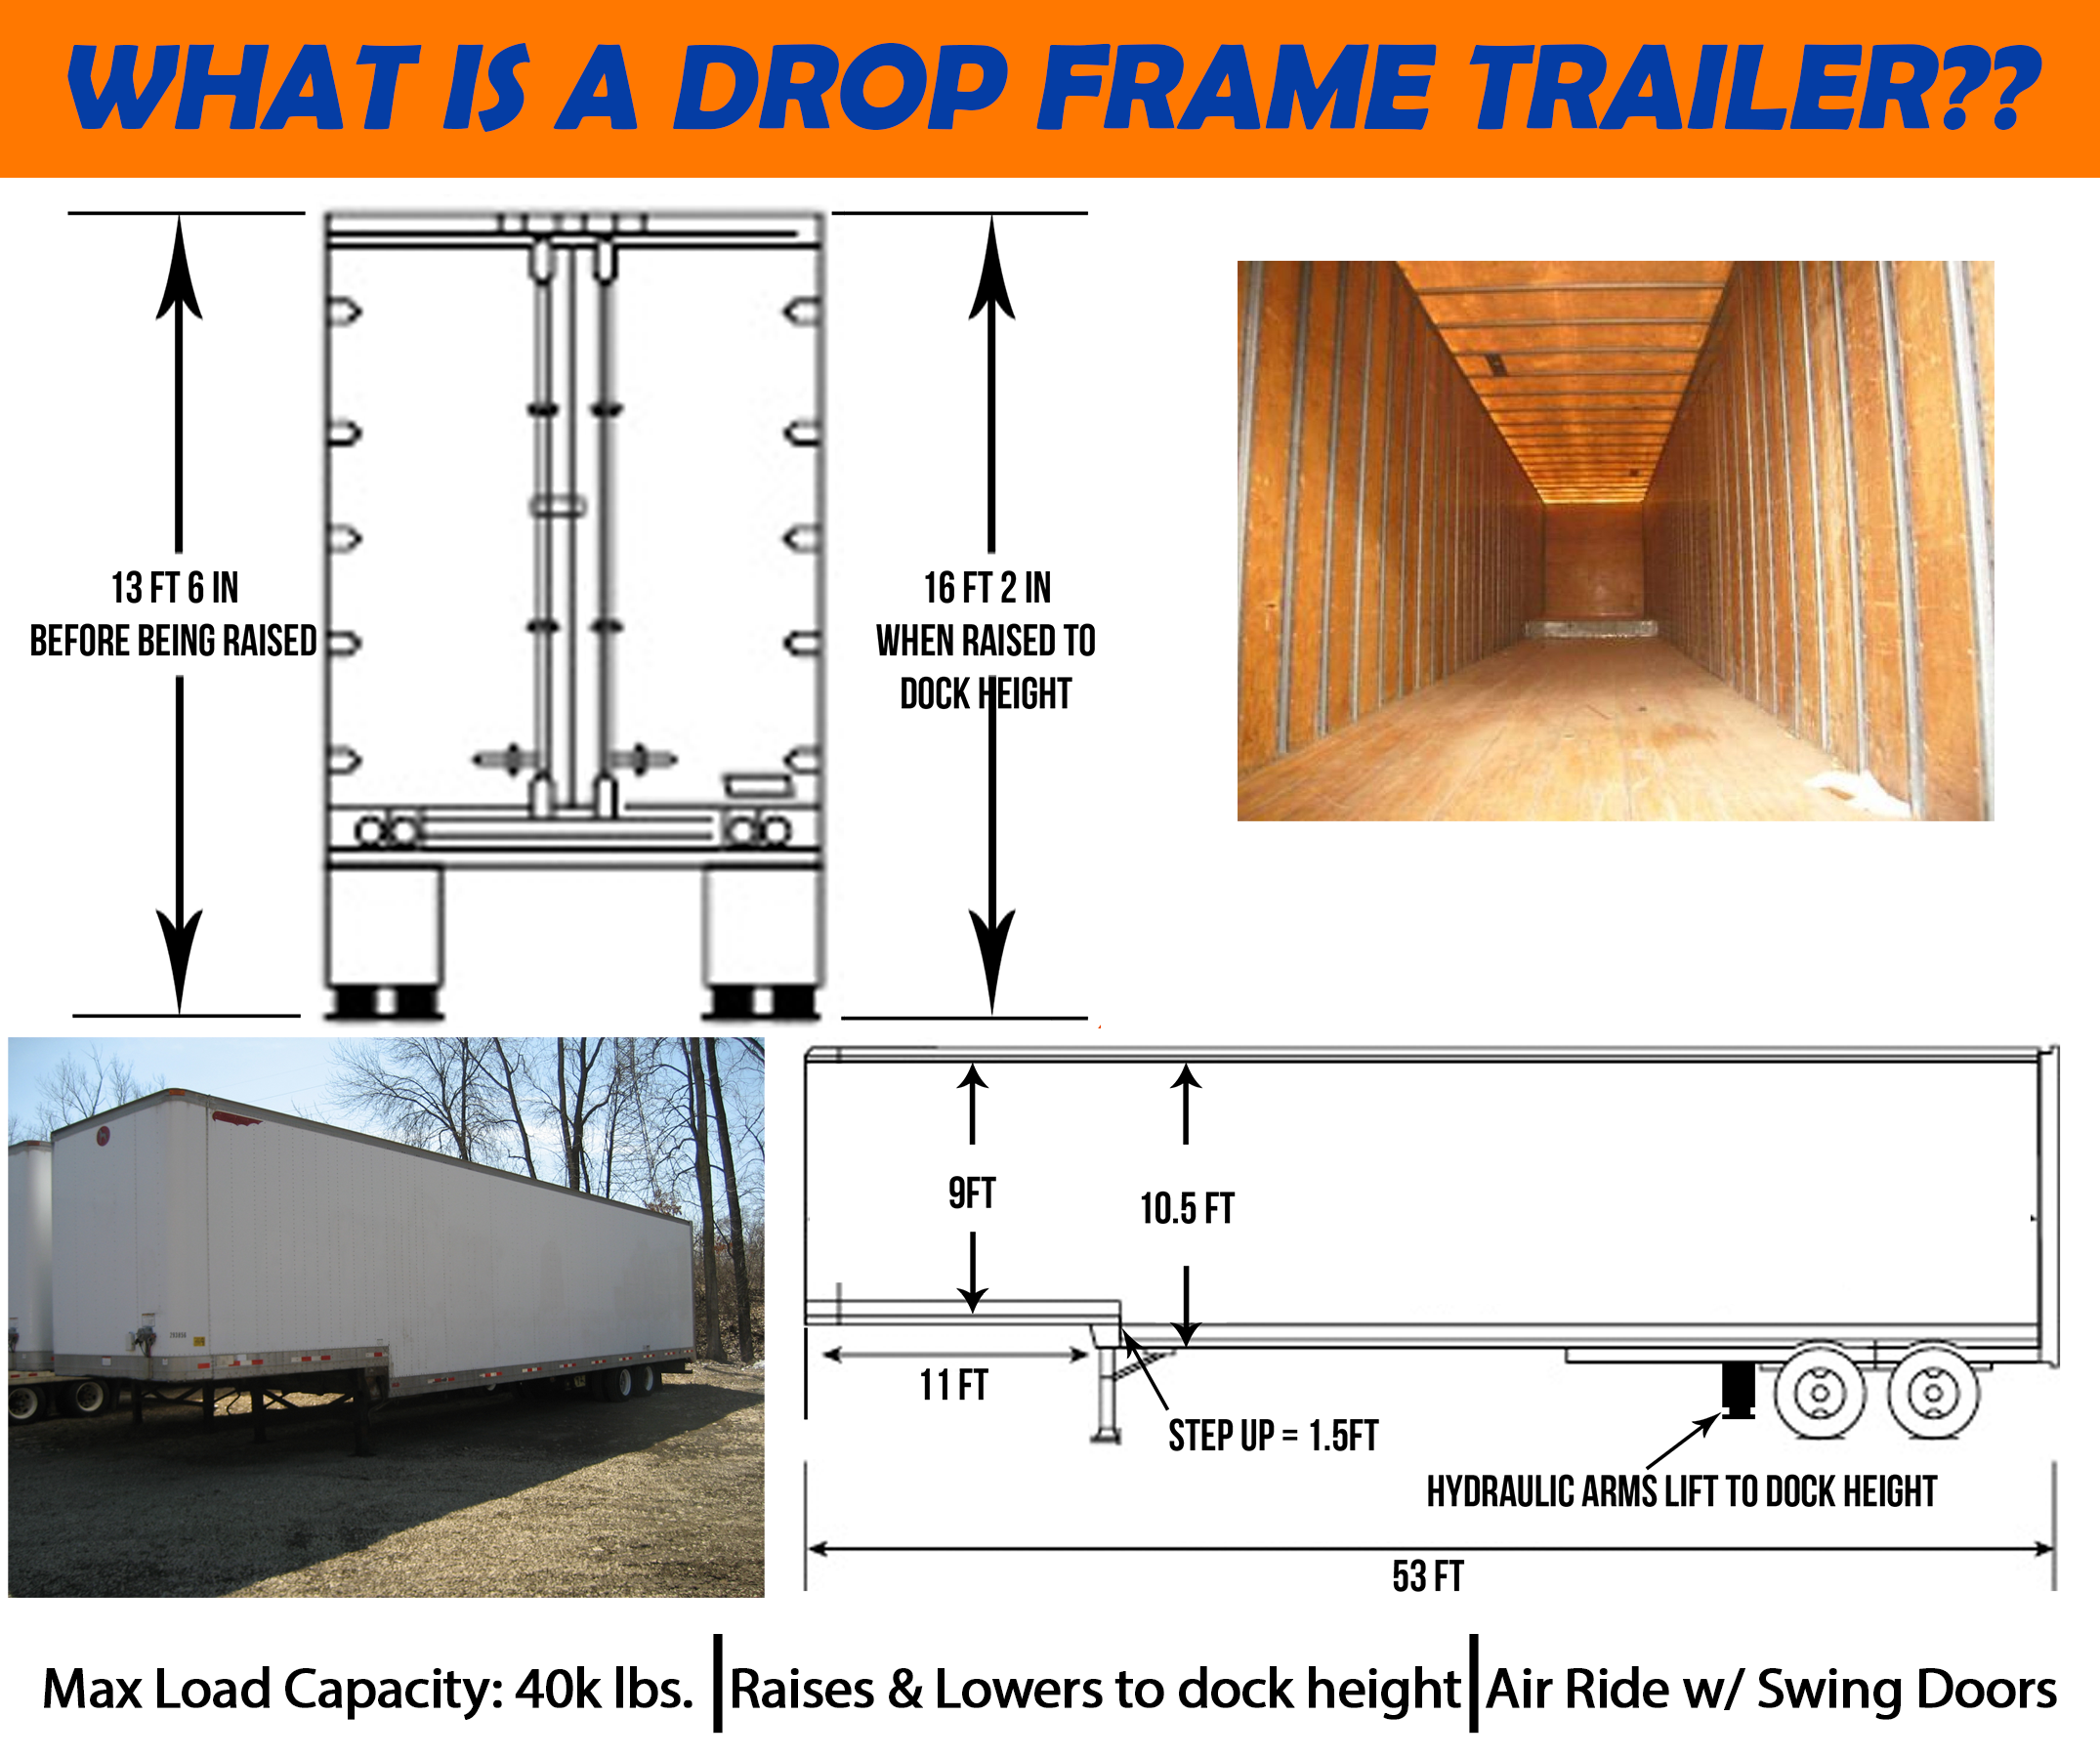 What is a drop frame trailer